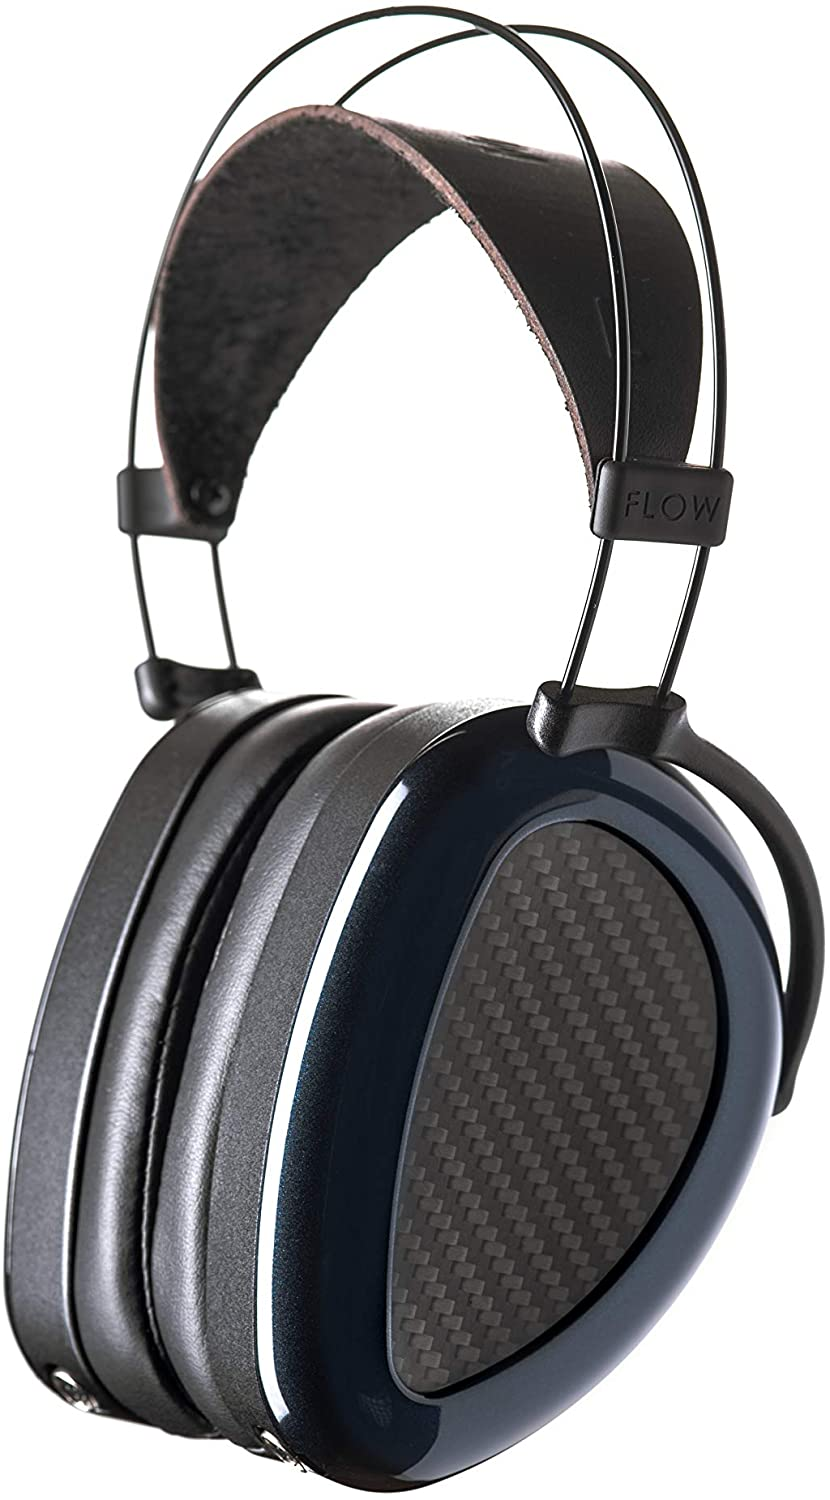 ÆON Flow Closed Back Headphone 71s8p81MzpLSL1500_